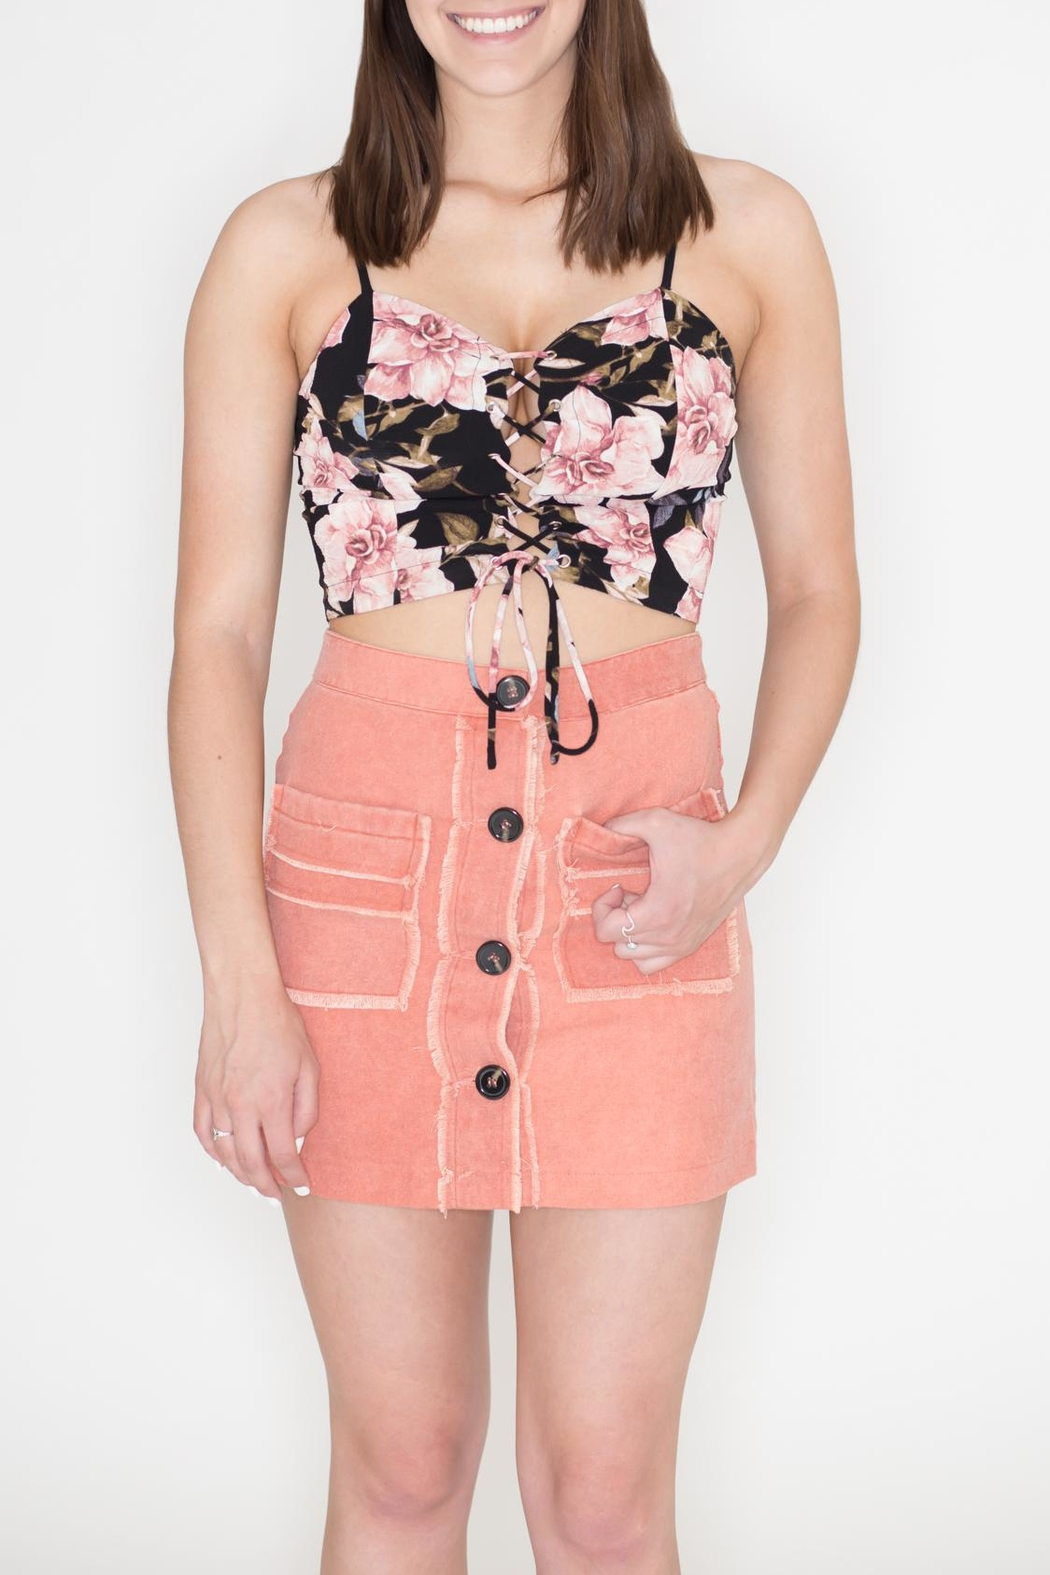 Bear Dance Floral Crop Top - Main Image